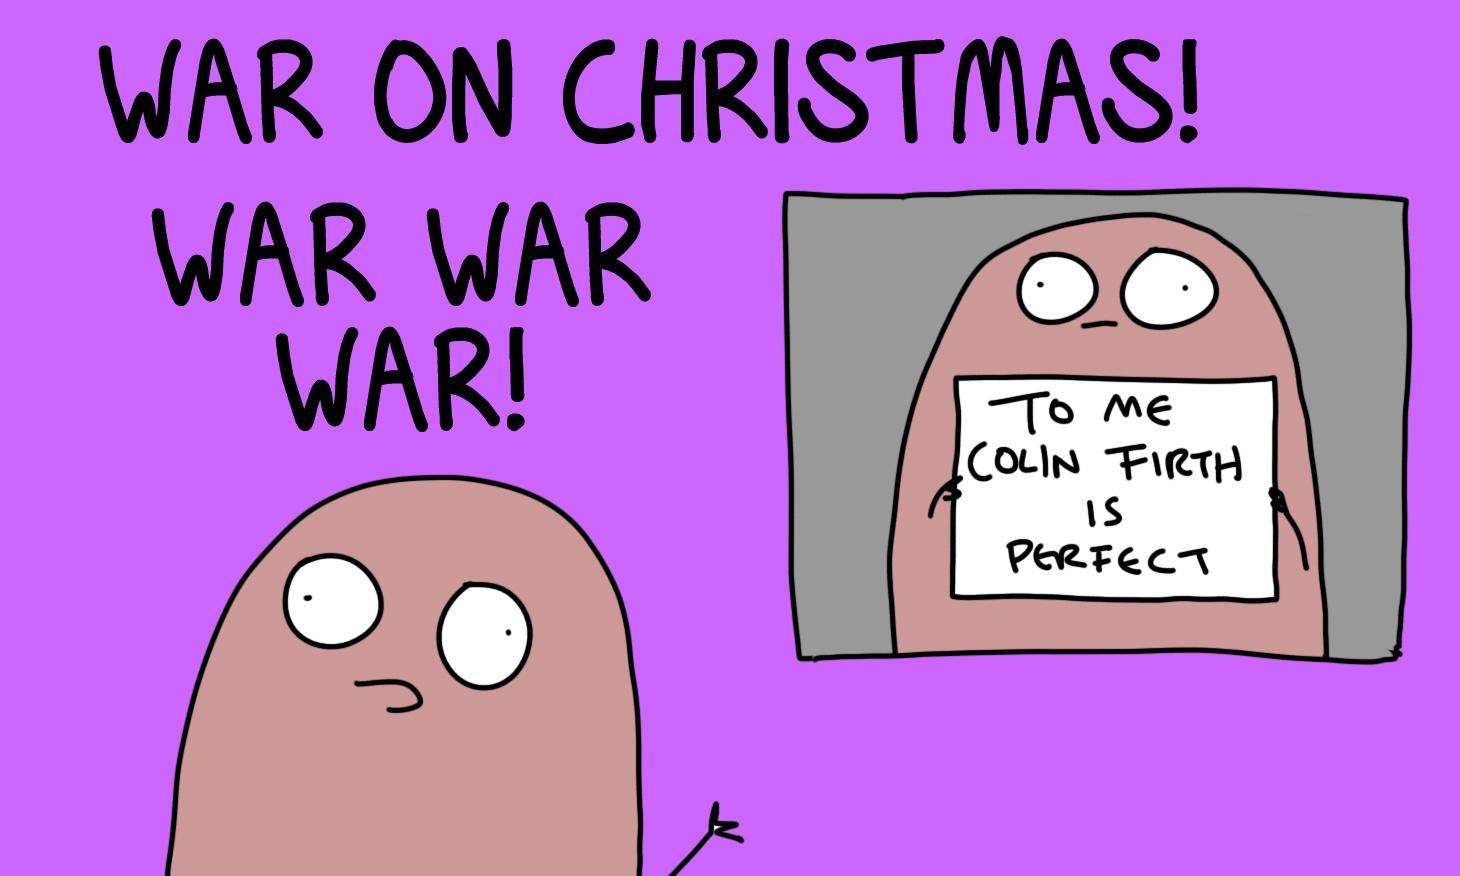 THERE'S A WAR ON CHRISTMAS! (and if there isn't we'll start one)